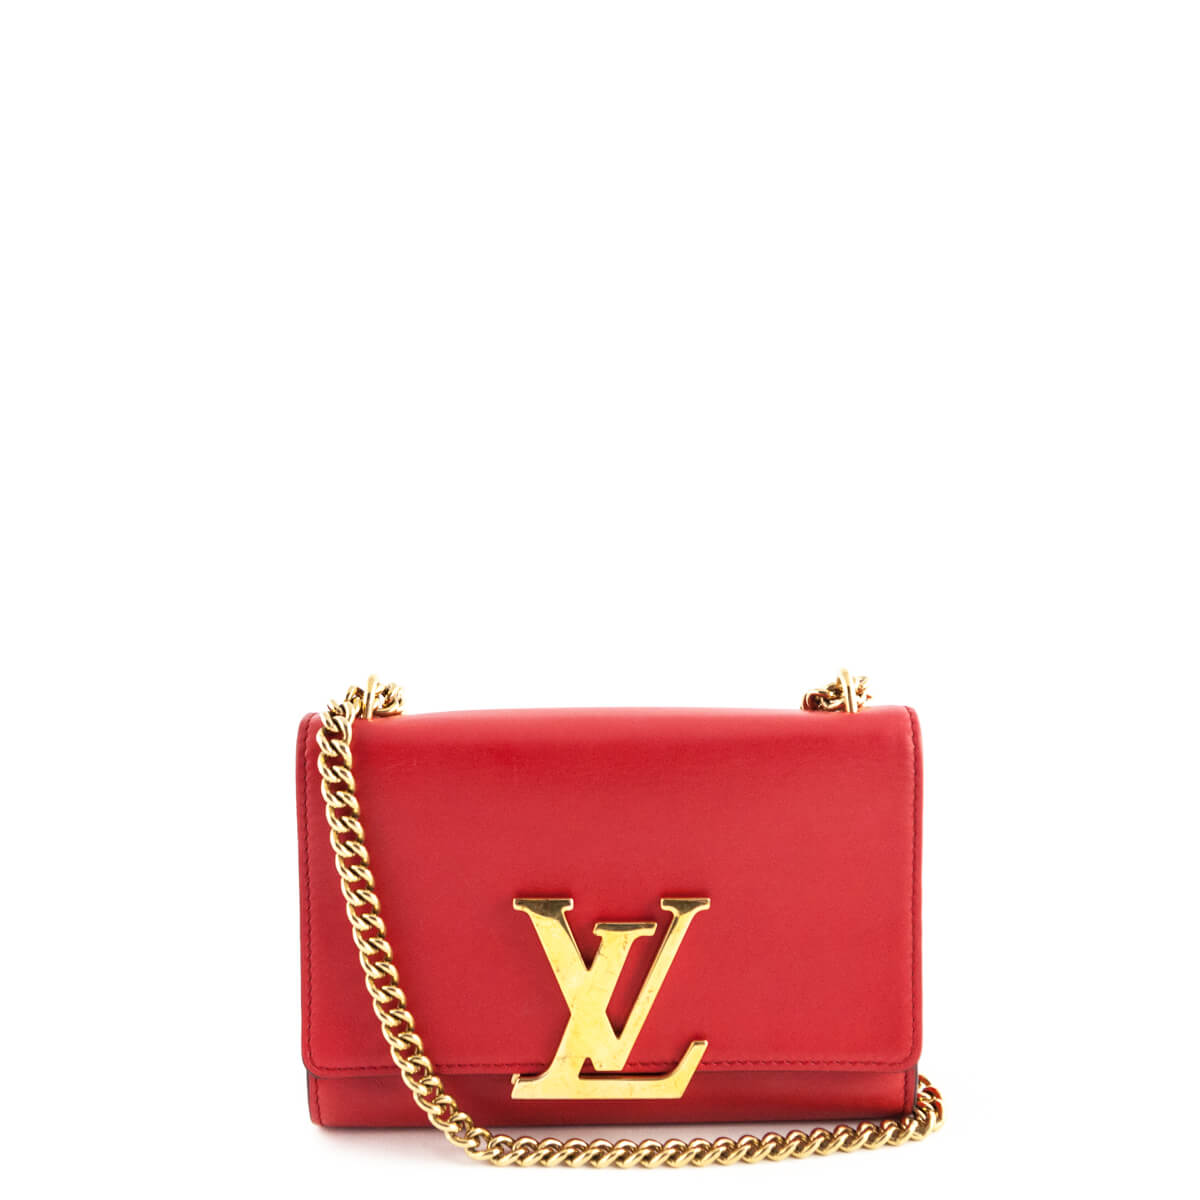 49466aaa08d0 Louis Vuitton Red Calfskin Chain Louise MM - LOVE that BAG - Preowned  Authentic Designer Handbags ...